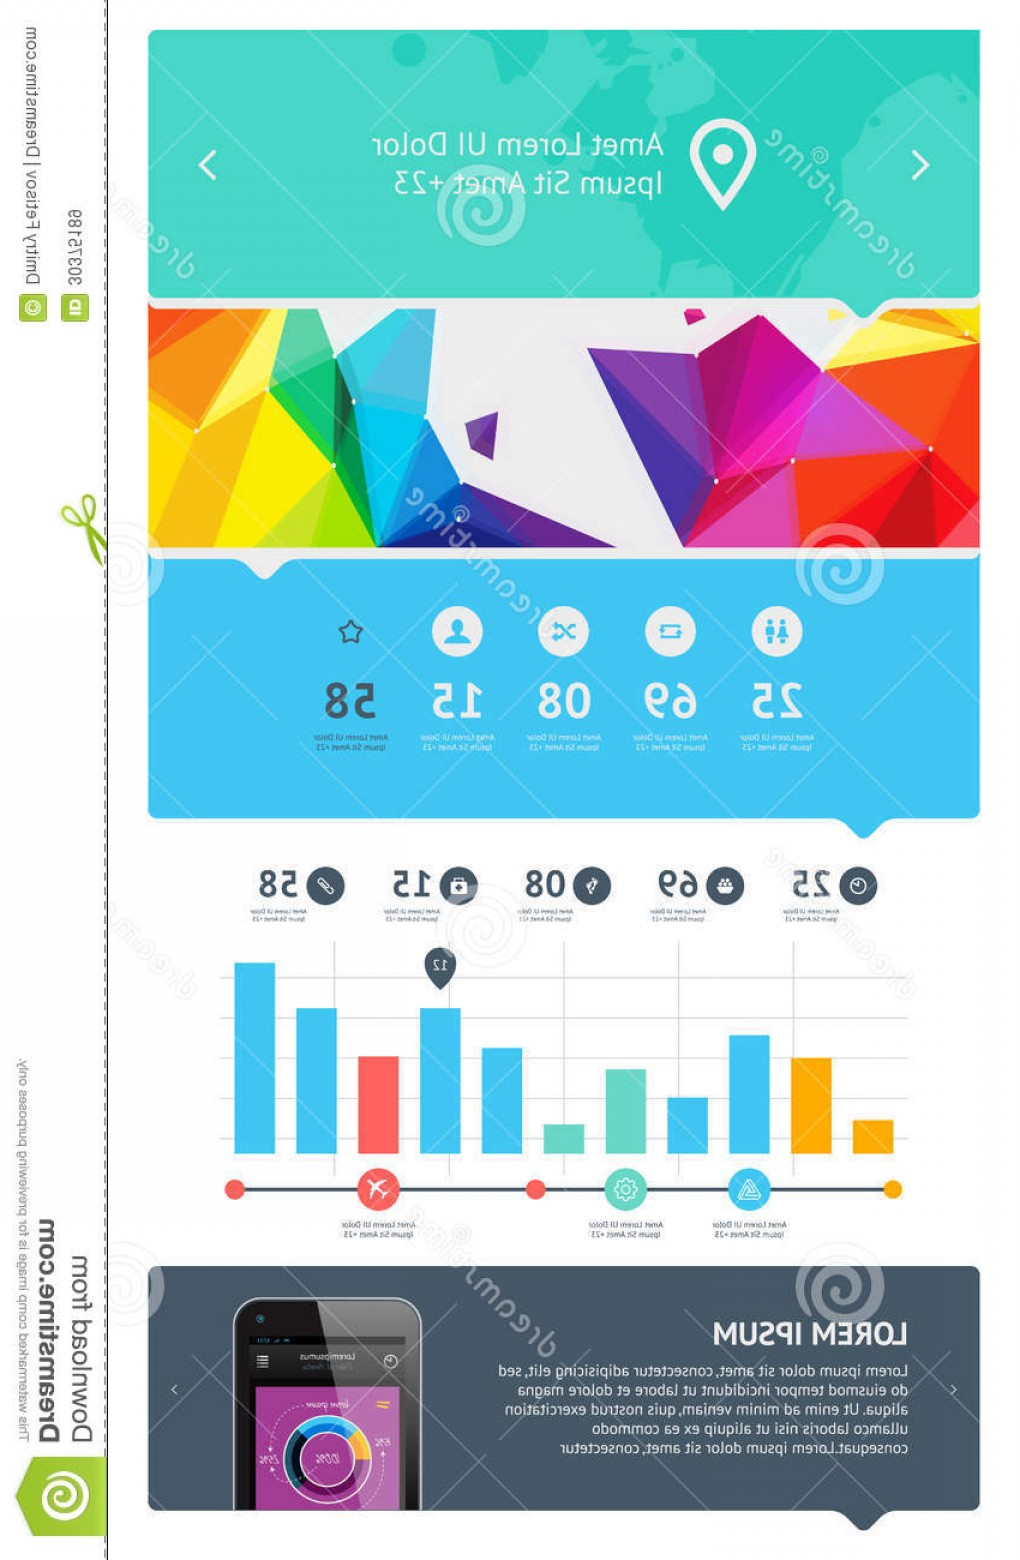 Vectors Buttons And Menus: Royalty Free Stock Images Elements Infographics Buttons Menus Eps Image